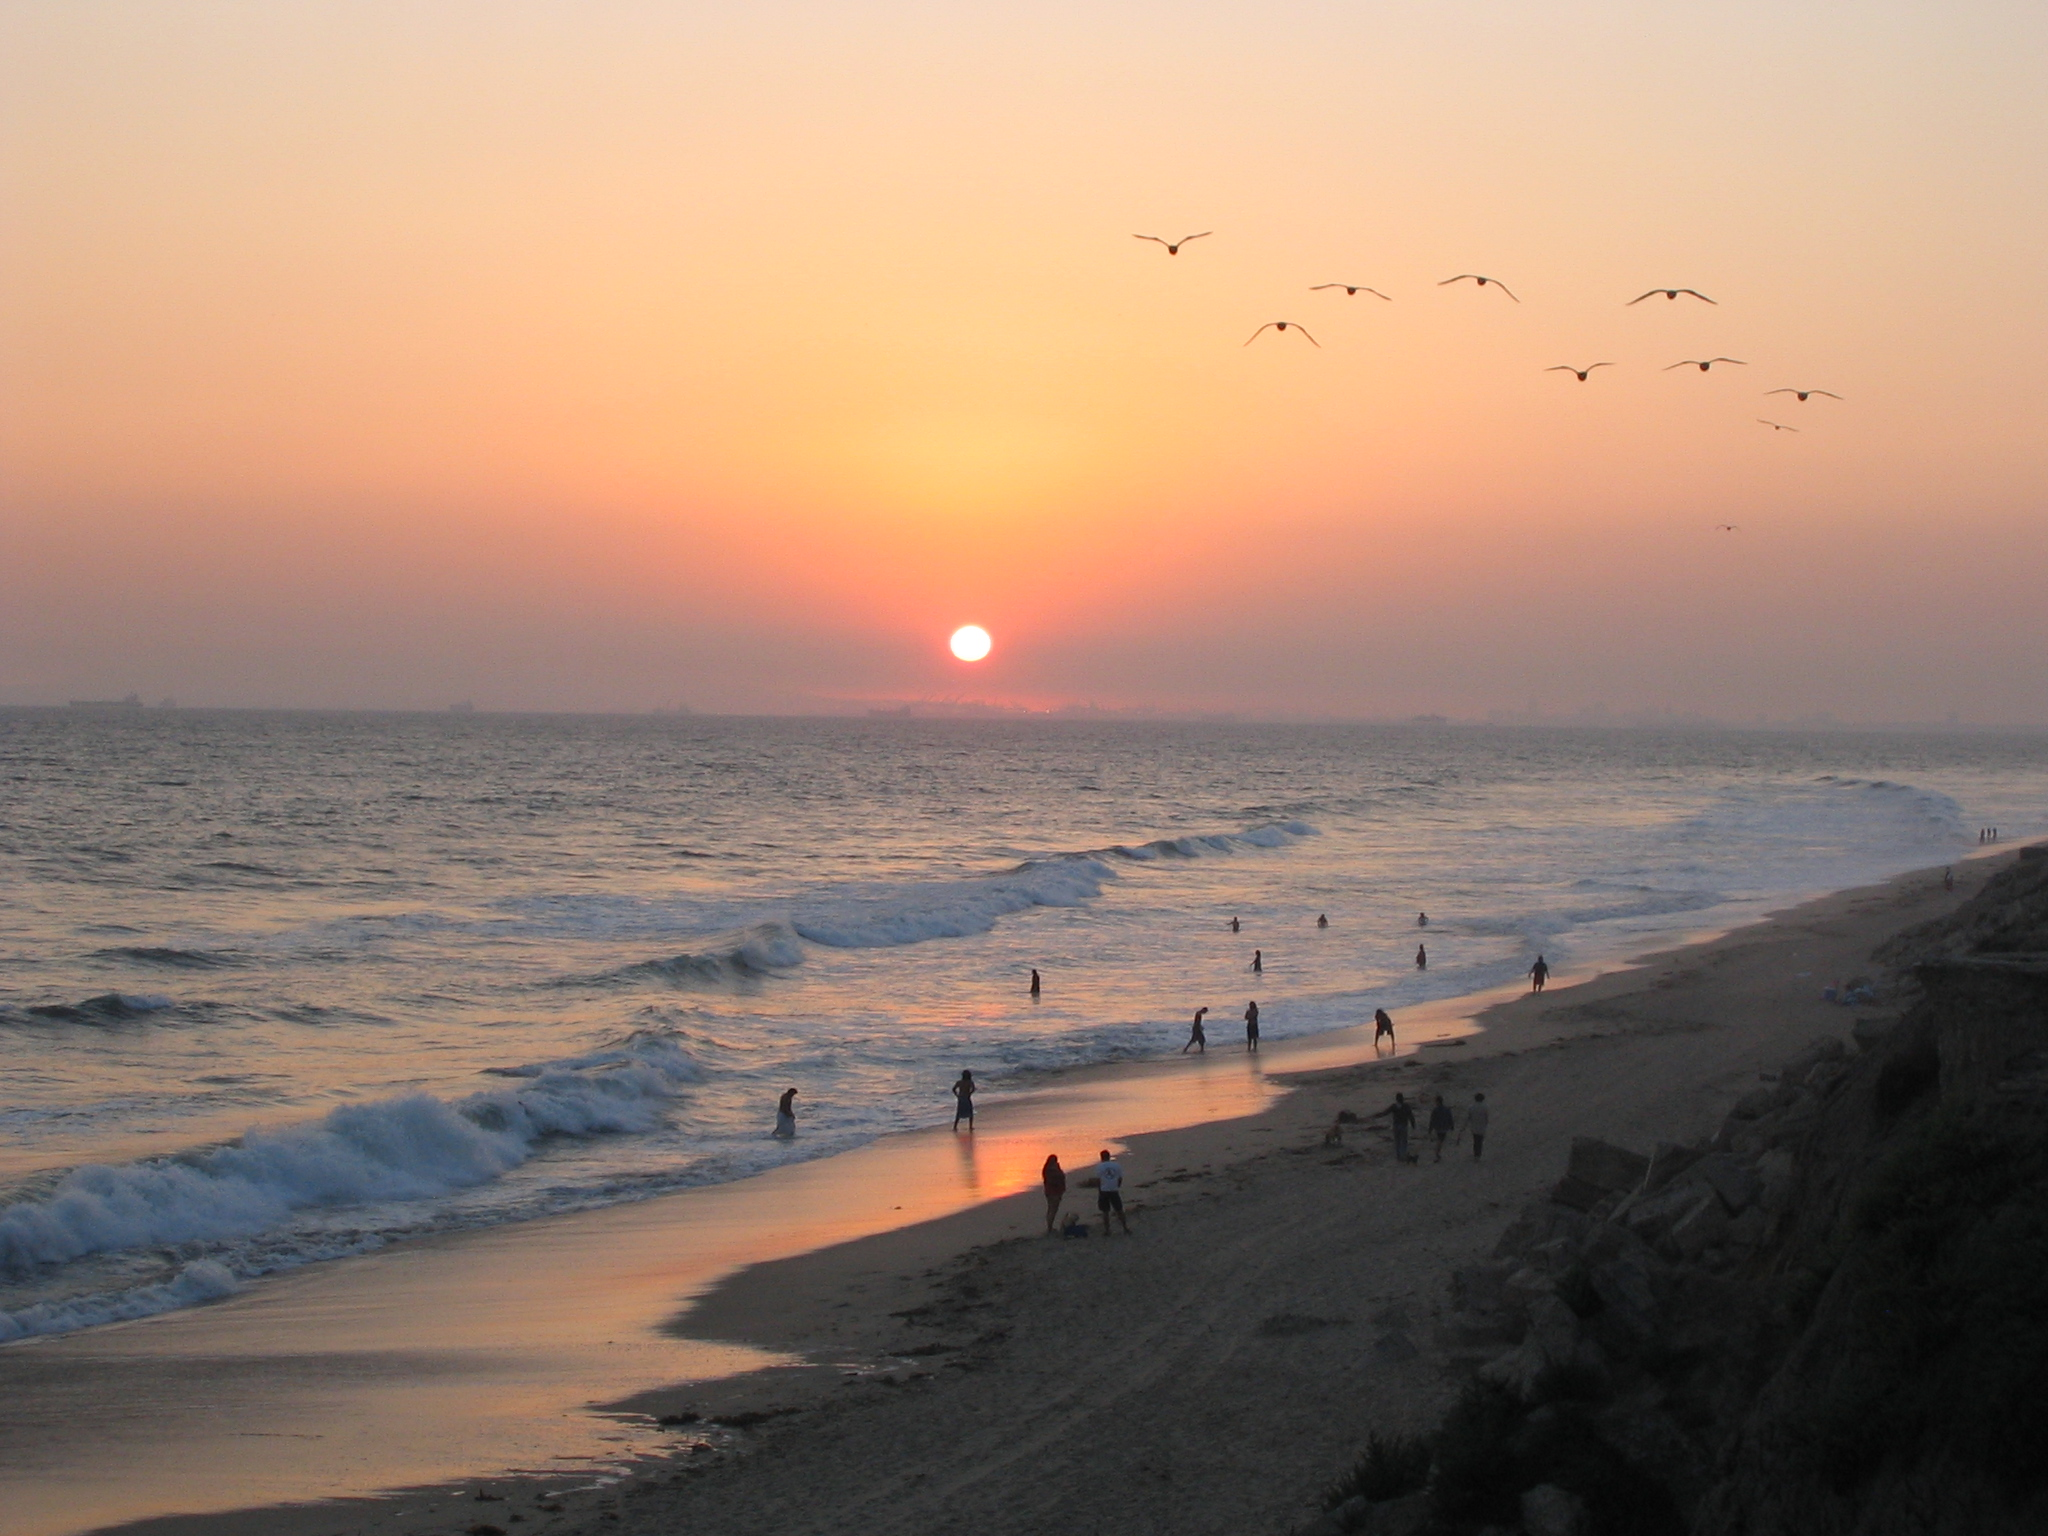 California Huntington Beach Apartments For Rentcalifornia Huntington Beach Area Weather Statistics